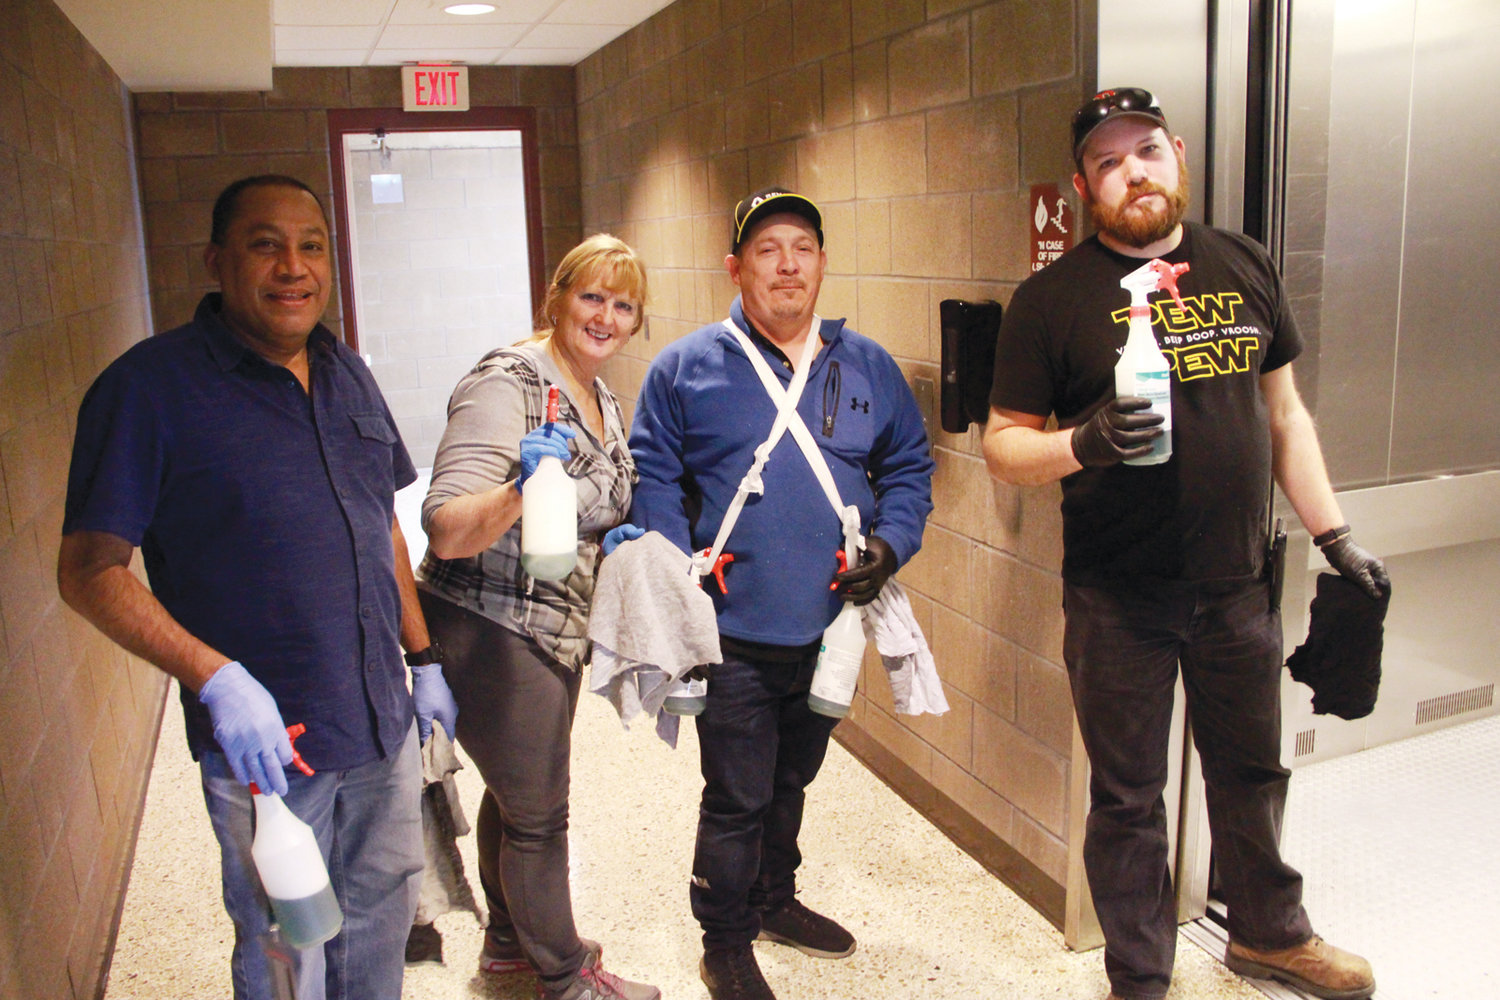 KEEPING IT CLEAN: The custodial crew at the Knight Campus of CCRI made the rounds spraying door handles and surfaces Sunday during the Rhode Island Academic Decathlon.